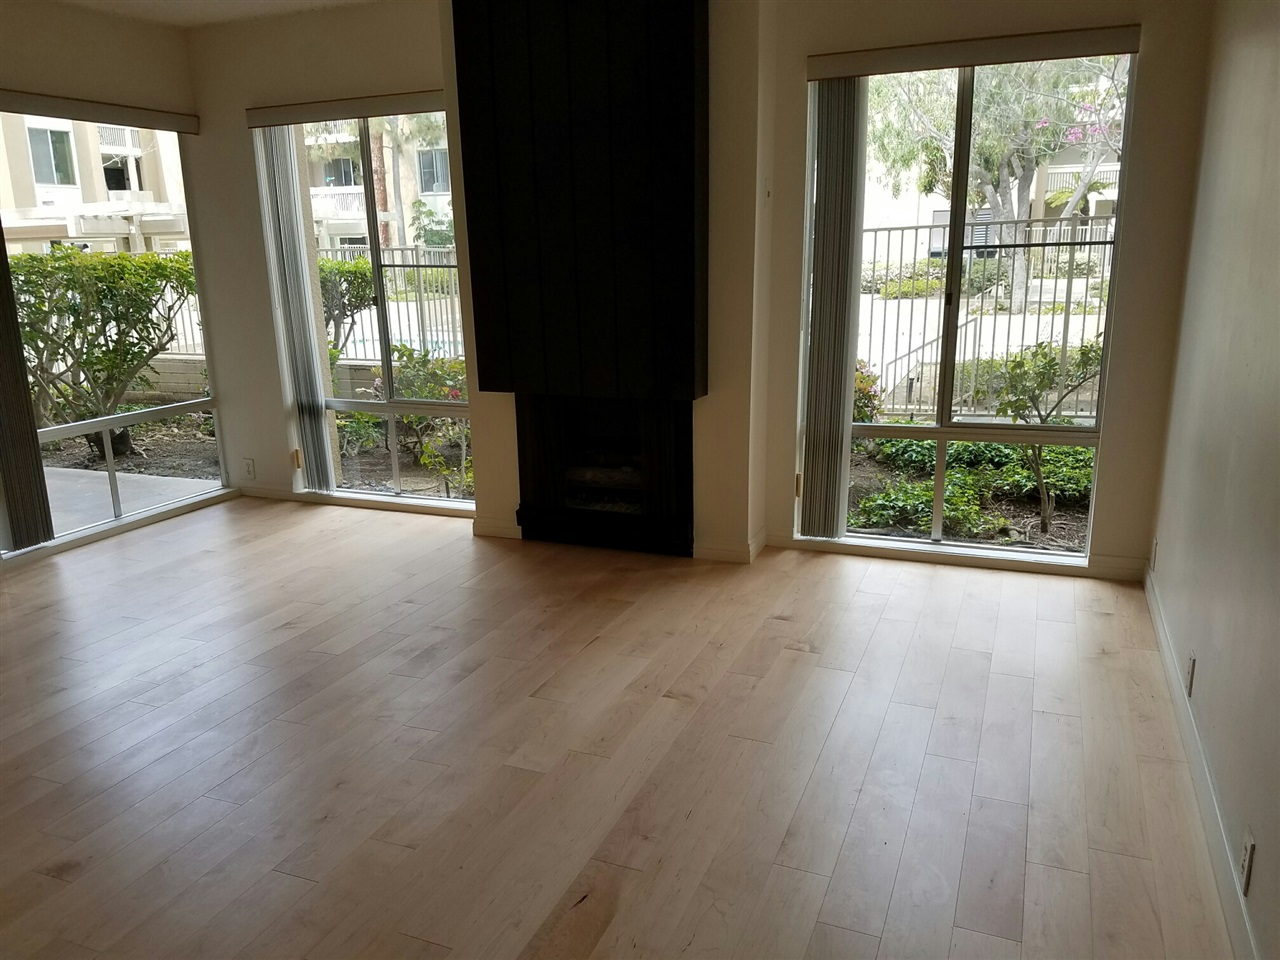 Photo 3: PACIFIC BEACH Condo for sale : 2 bedrooms : 1885 Diamond St #107 in San Diego